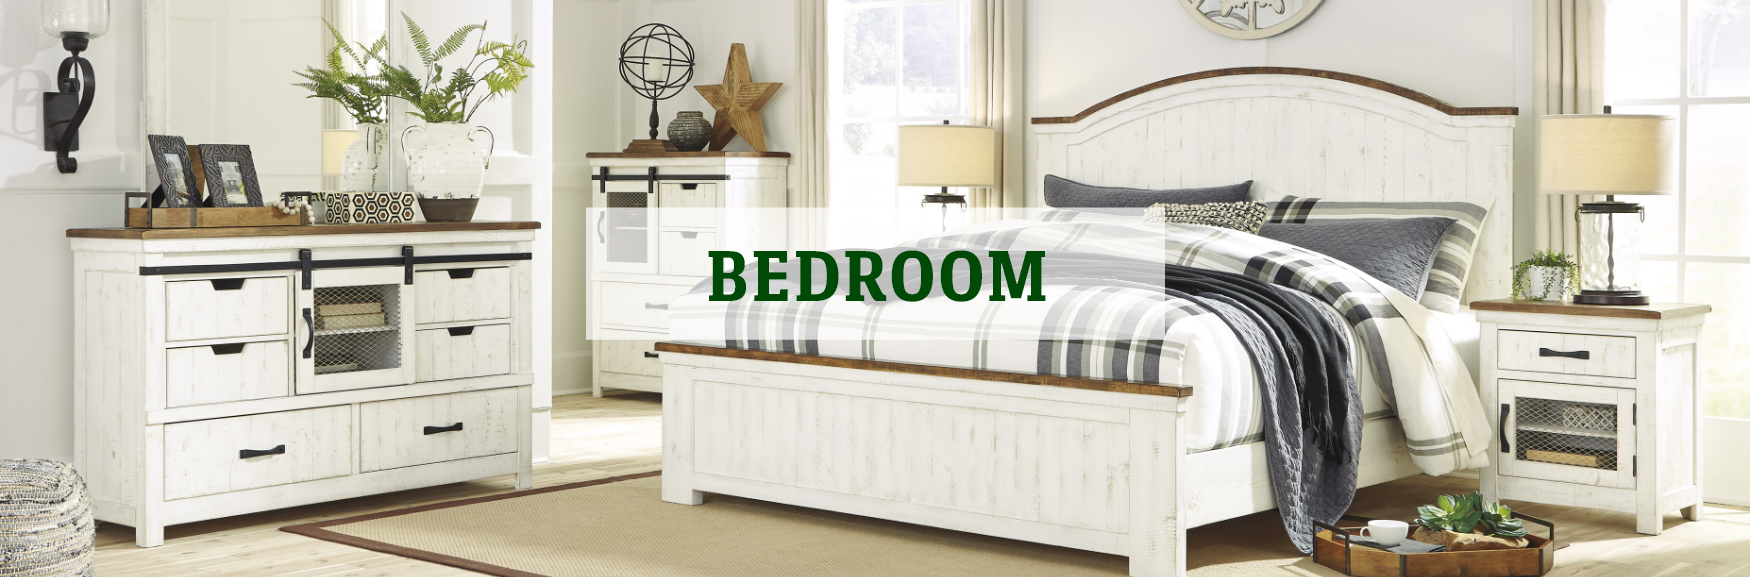 Bedroom Product